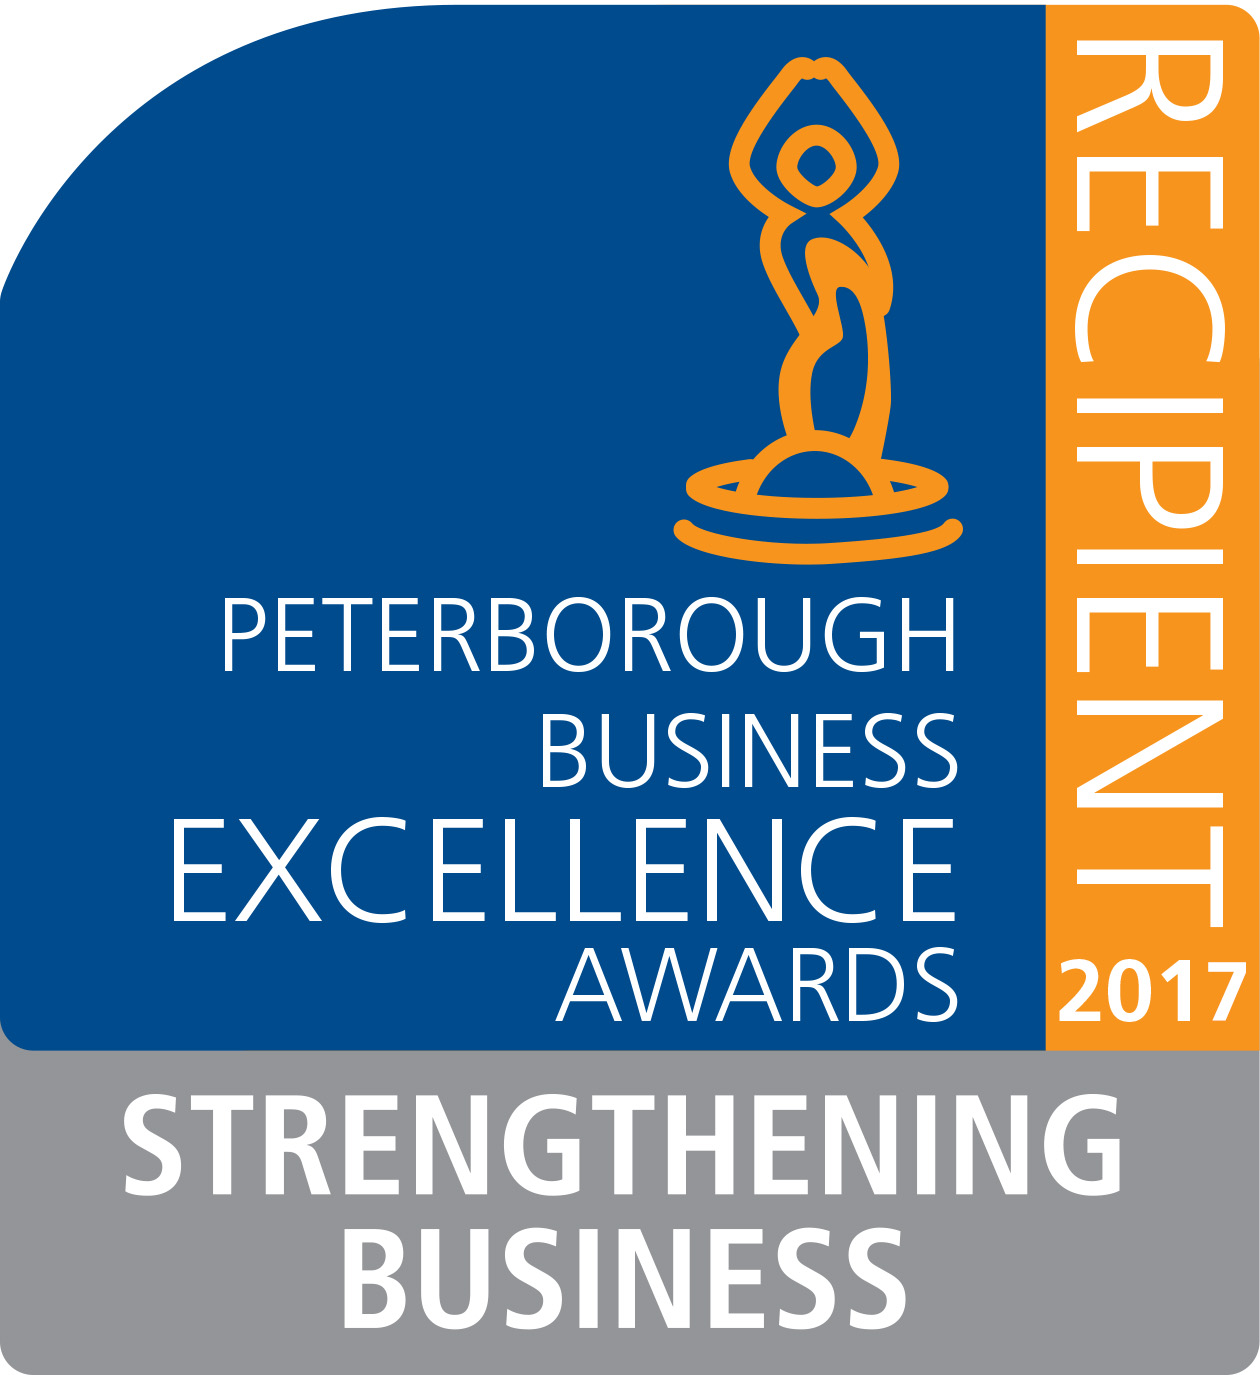 Pbx at lett architects bring your business cards and get ready to get connected to the peterborough business community colourmoves